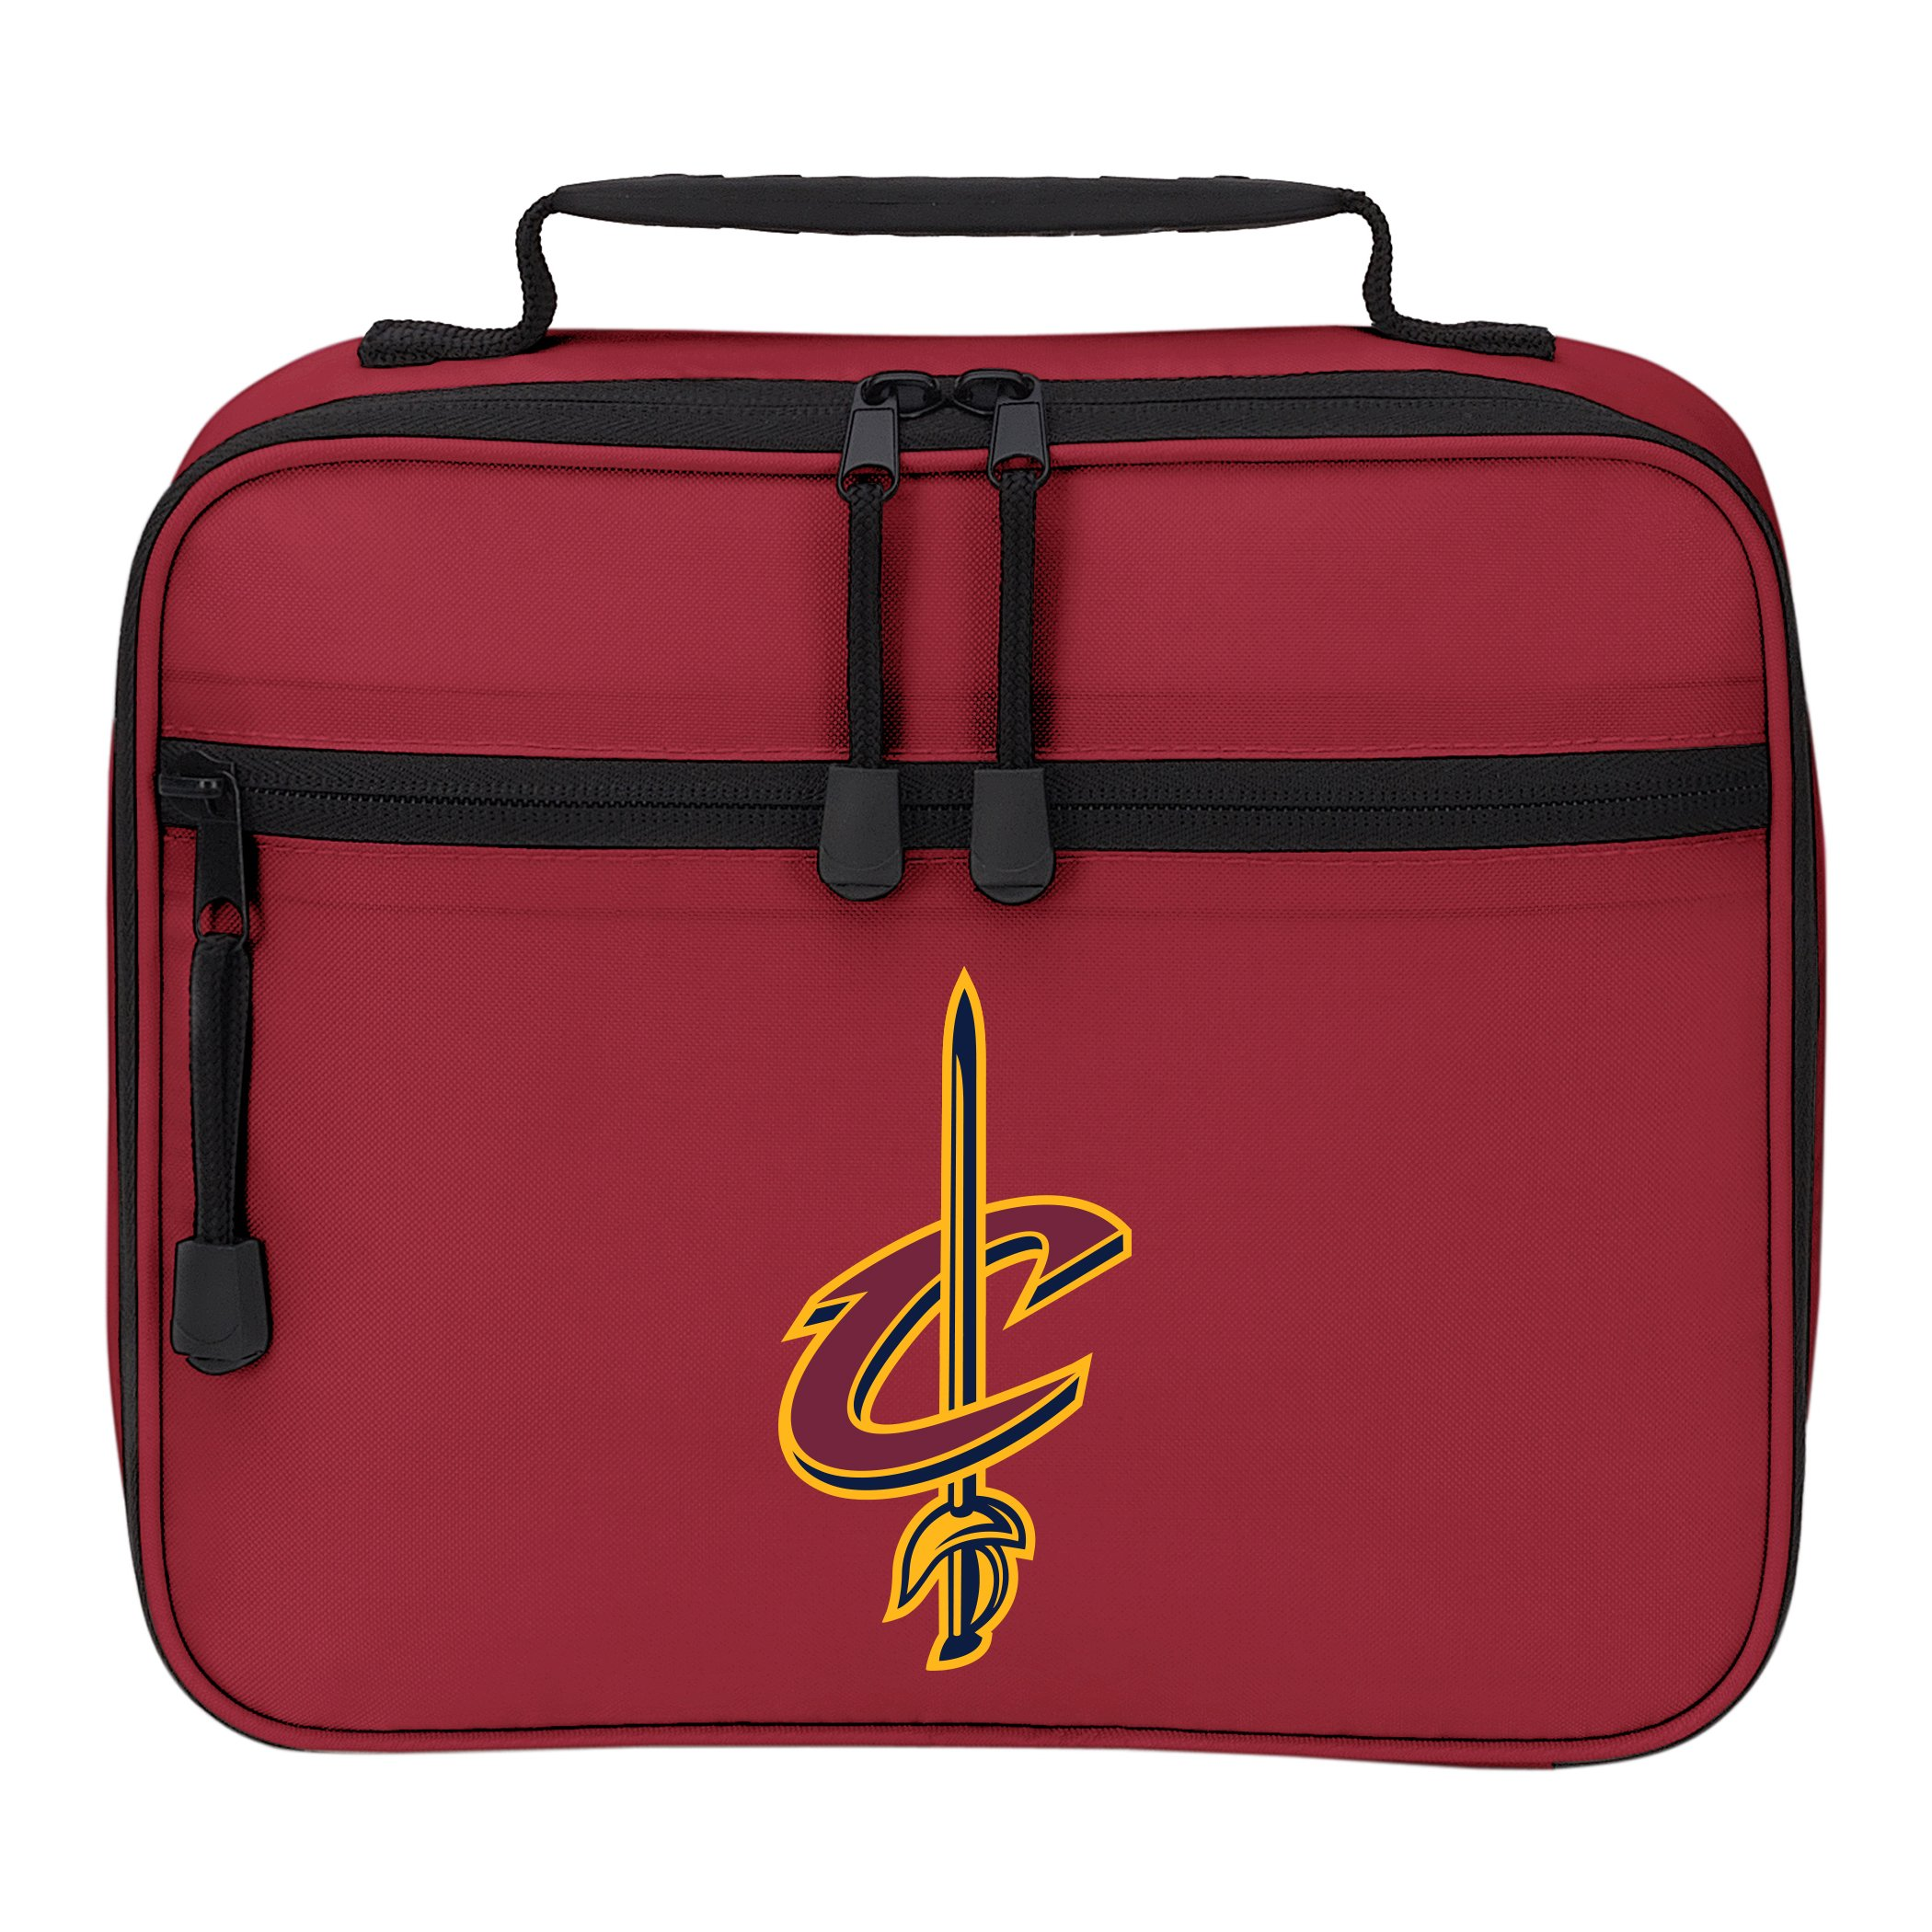 NBA Cleveland Cavaliers ''Cooltime'' Lunch Kit''Cooltime'' Lunch Kit, Red, One Size